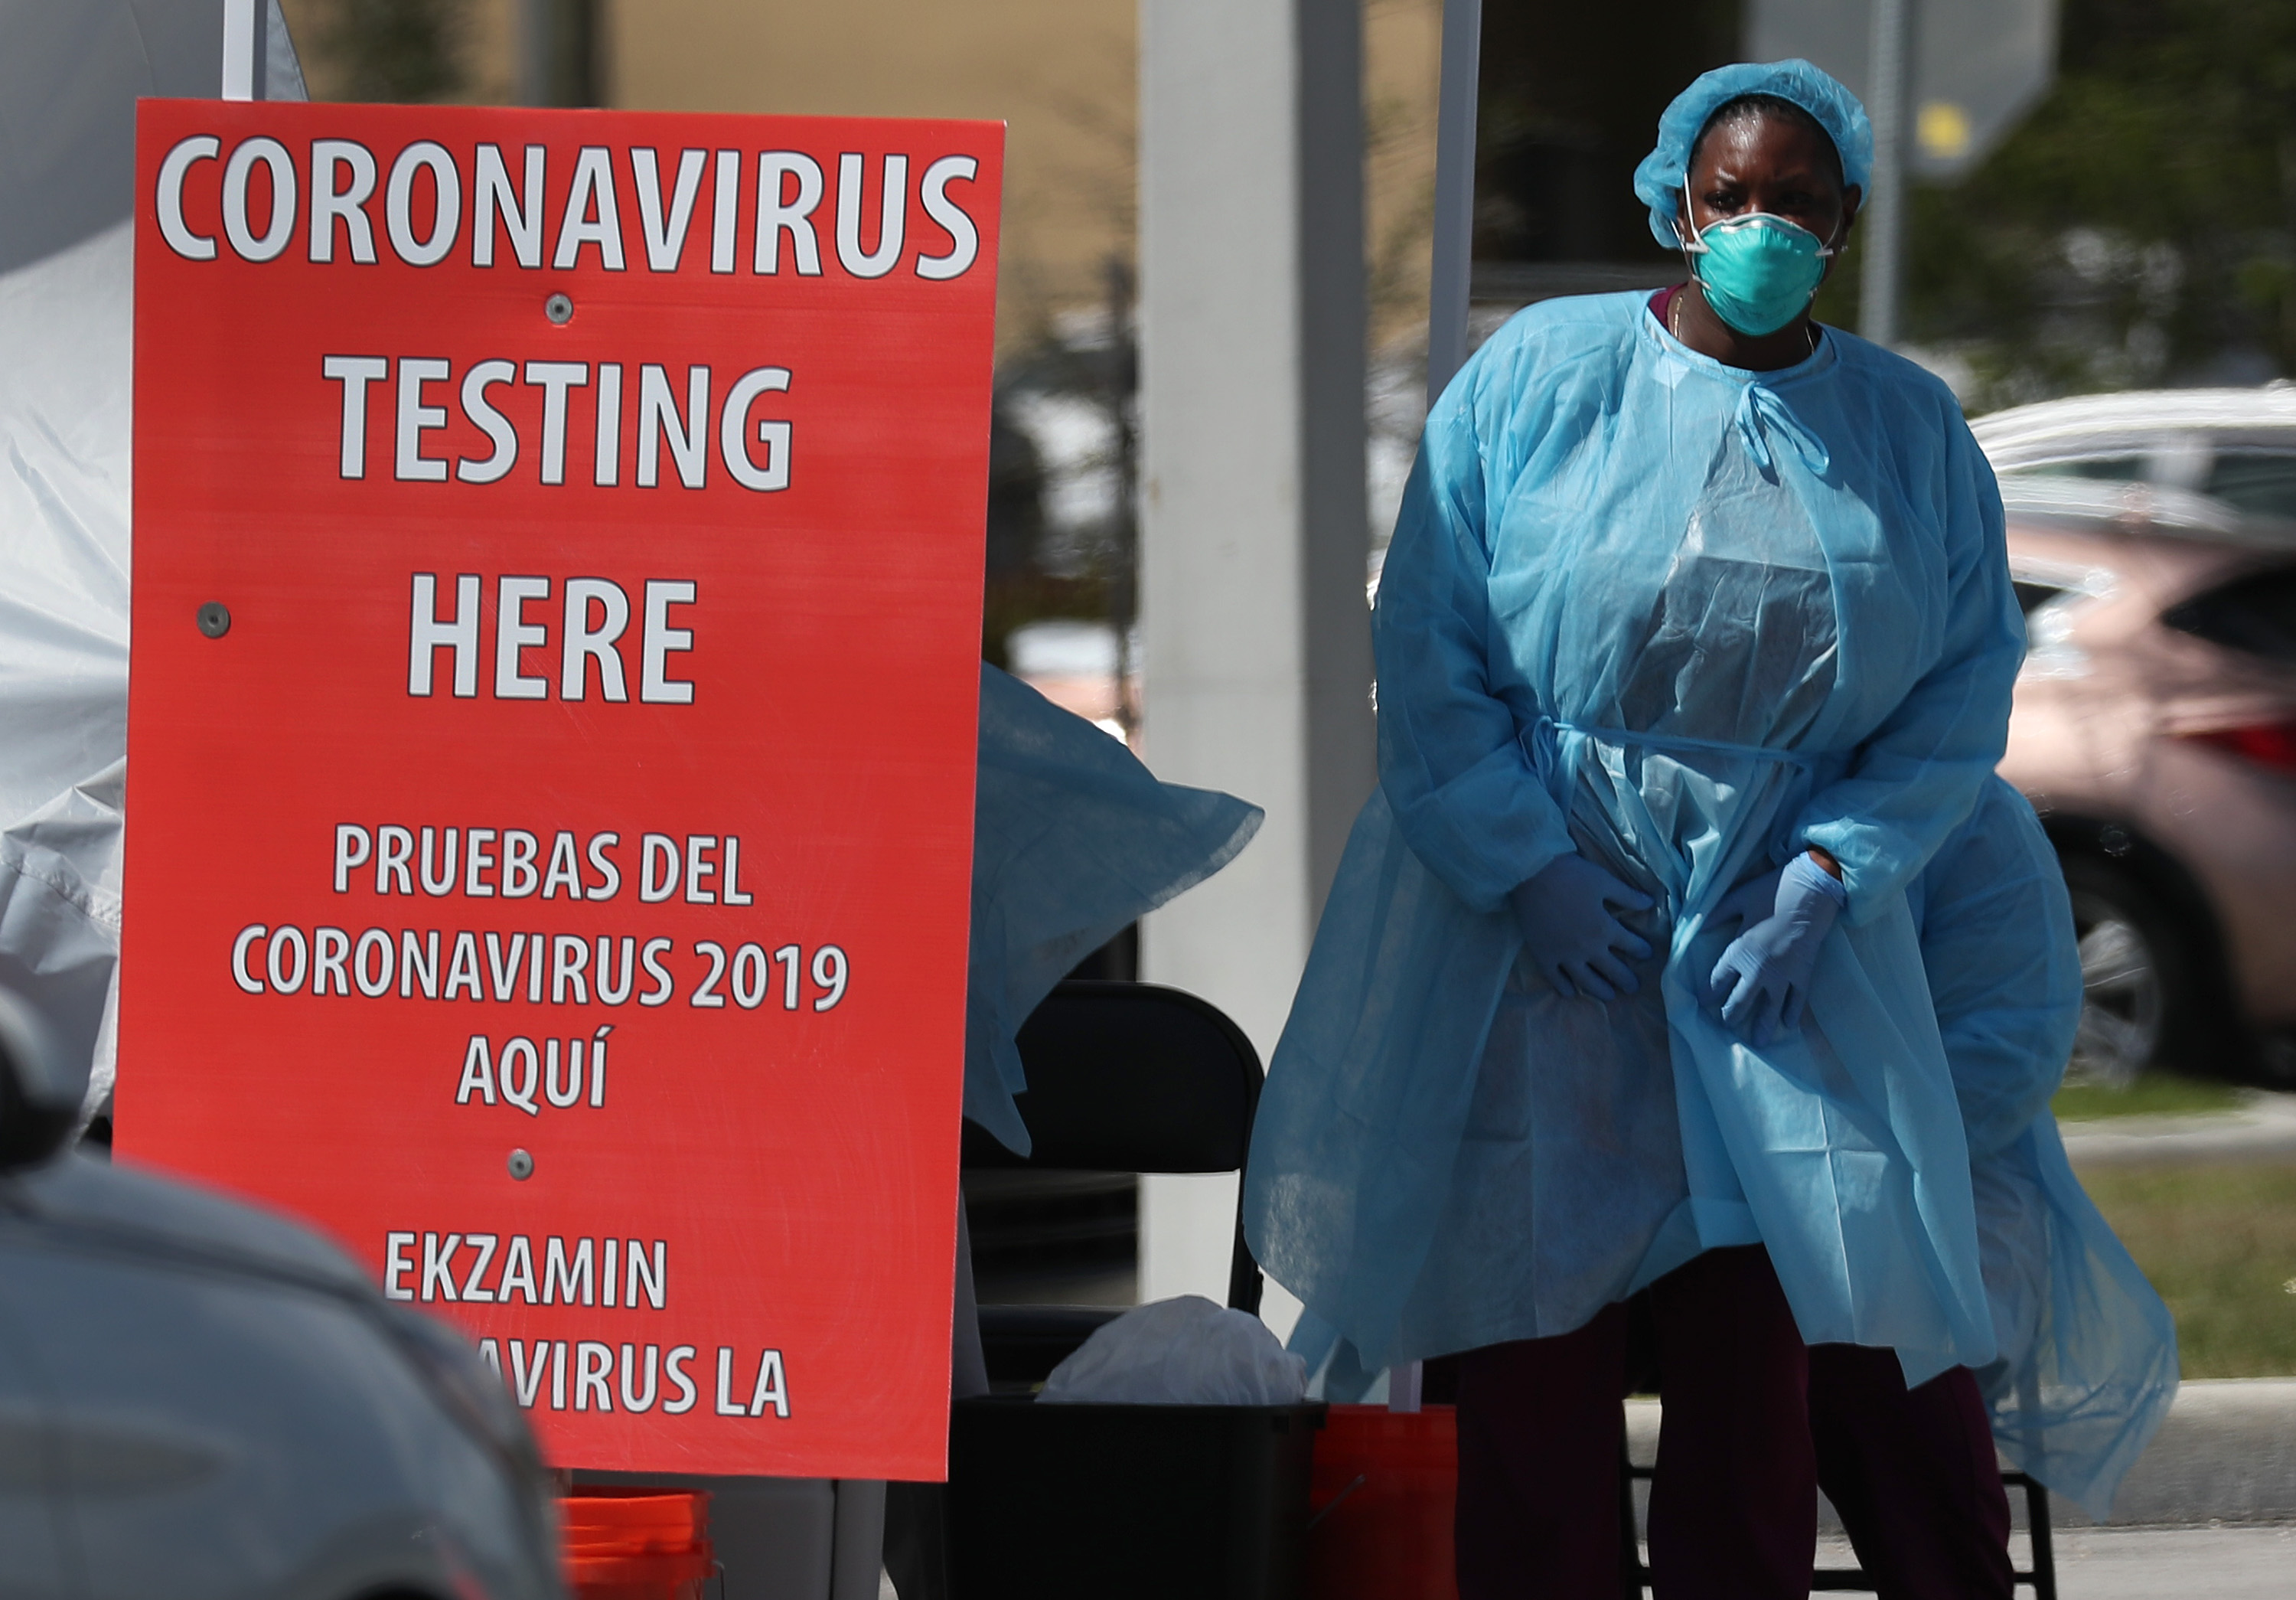 A member of the health care staff from the Community Health of South Florida, Inc. (CHI) prepares to test people for the coronavirus in the parking lot of its Doris Ison Health Center on March 18 in Miami, Florida.